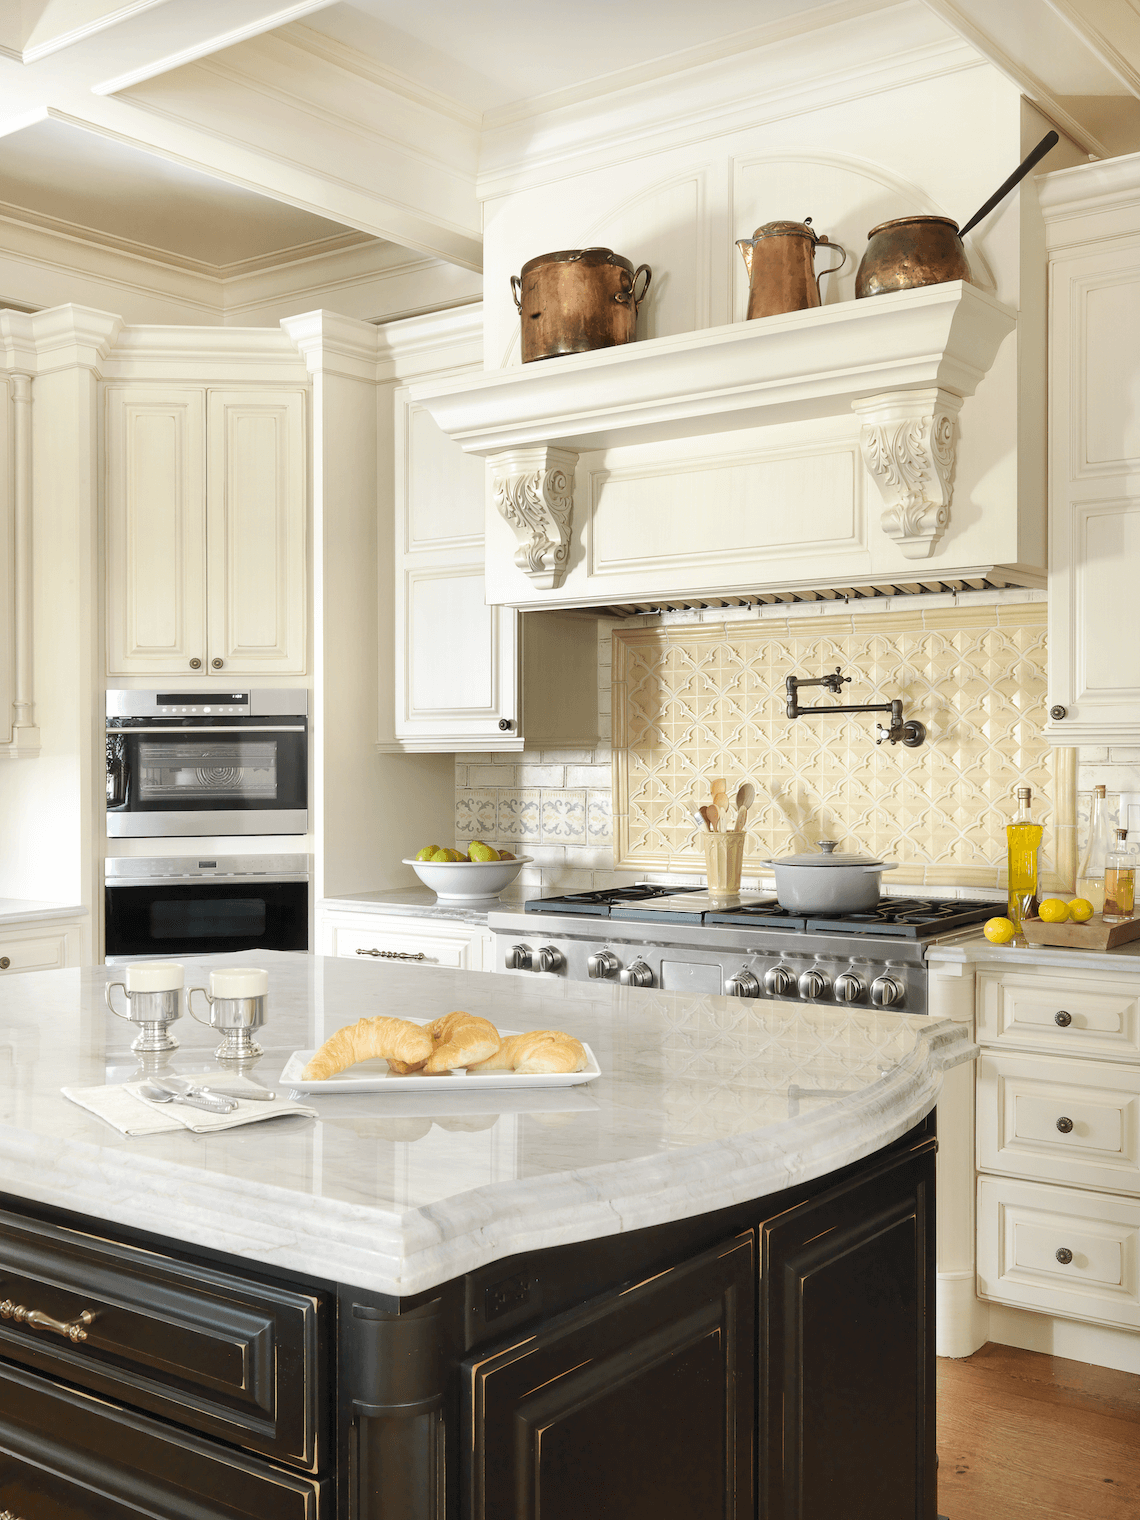 A Cook's Kitchen - Traditional Range Hood with Double Ovens by Beck/Allen Cabinetry